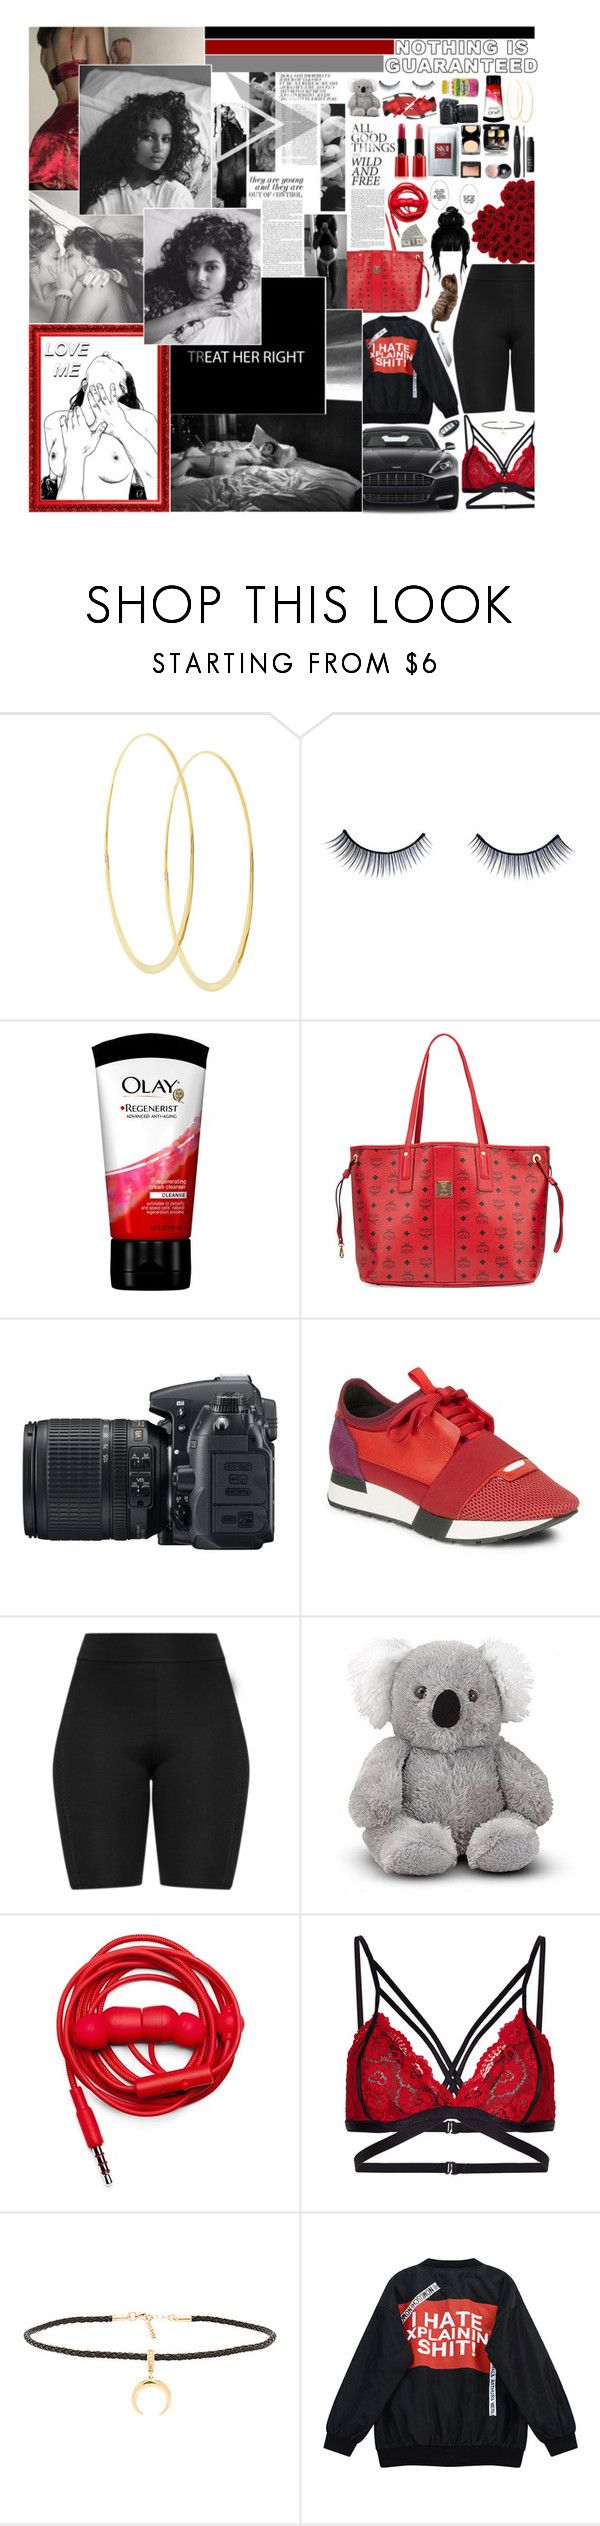 """➝ I'm a one night stand, cuffing wasn't in the plan until you came through, you were stunting with your crew."" by etherealspiri-t ❤ liked on Polyvore featuring Lana, Napoleon Perdis, Olay, MCM, Nikon, Balenciaga, Urbanears, Joolz by Martha Calvo and Chicnova Fashion"